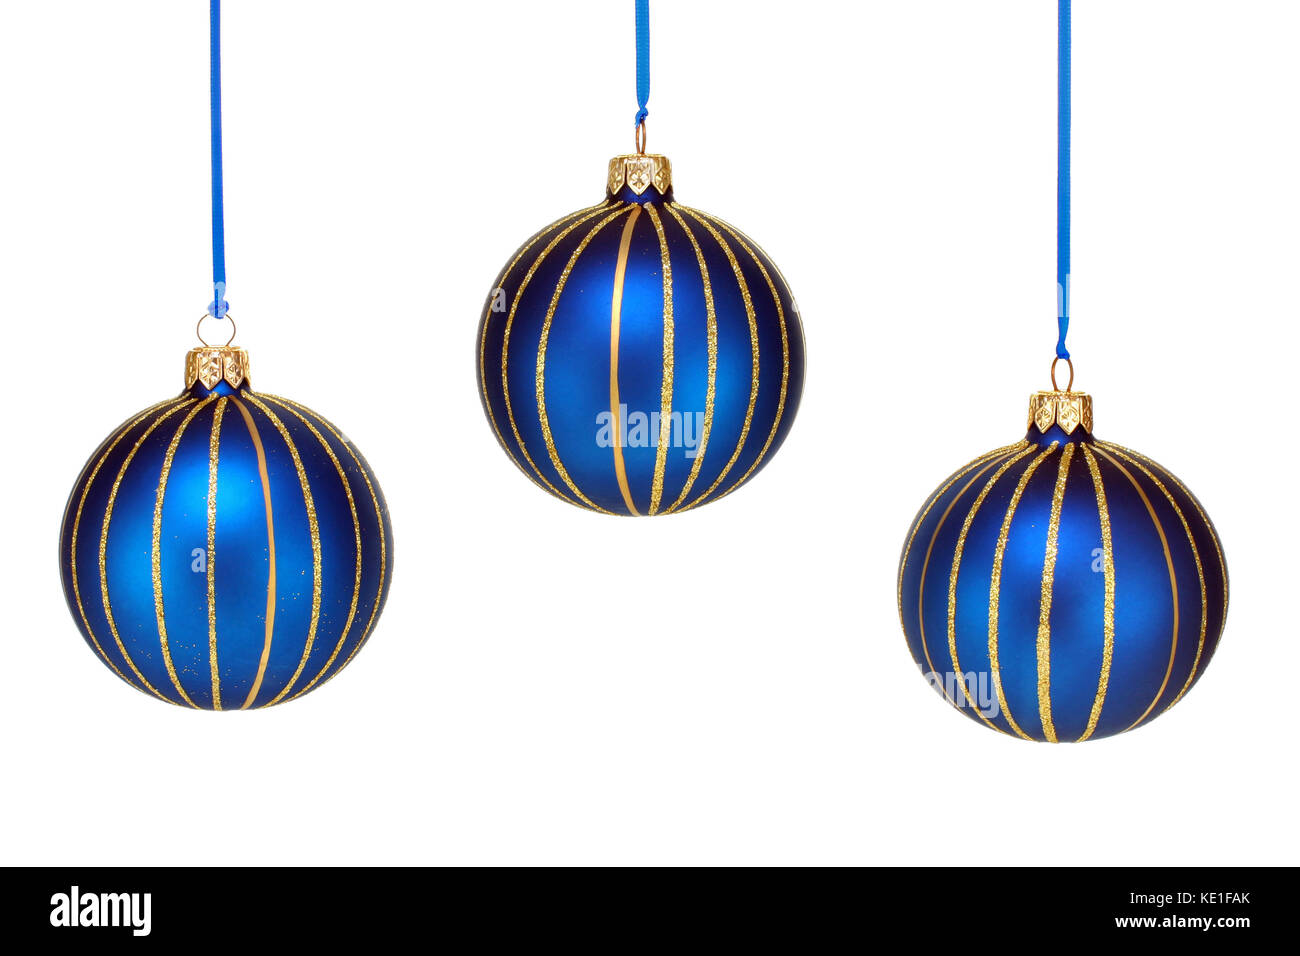 three blue and gold christmas ornaments hanging against a white background